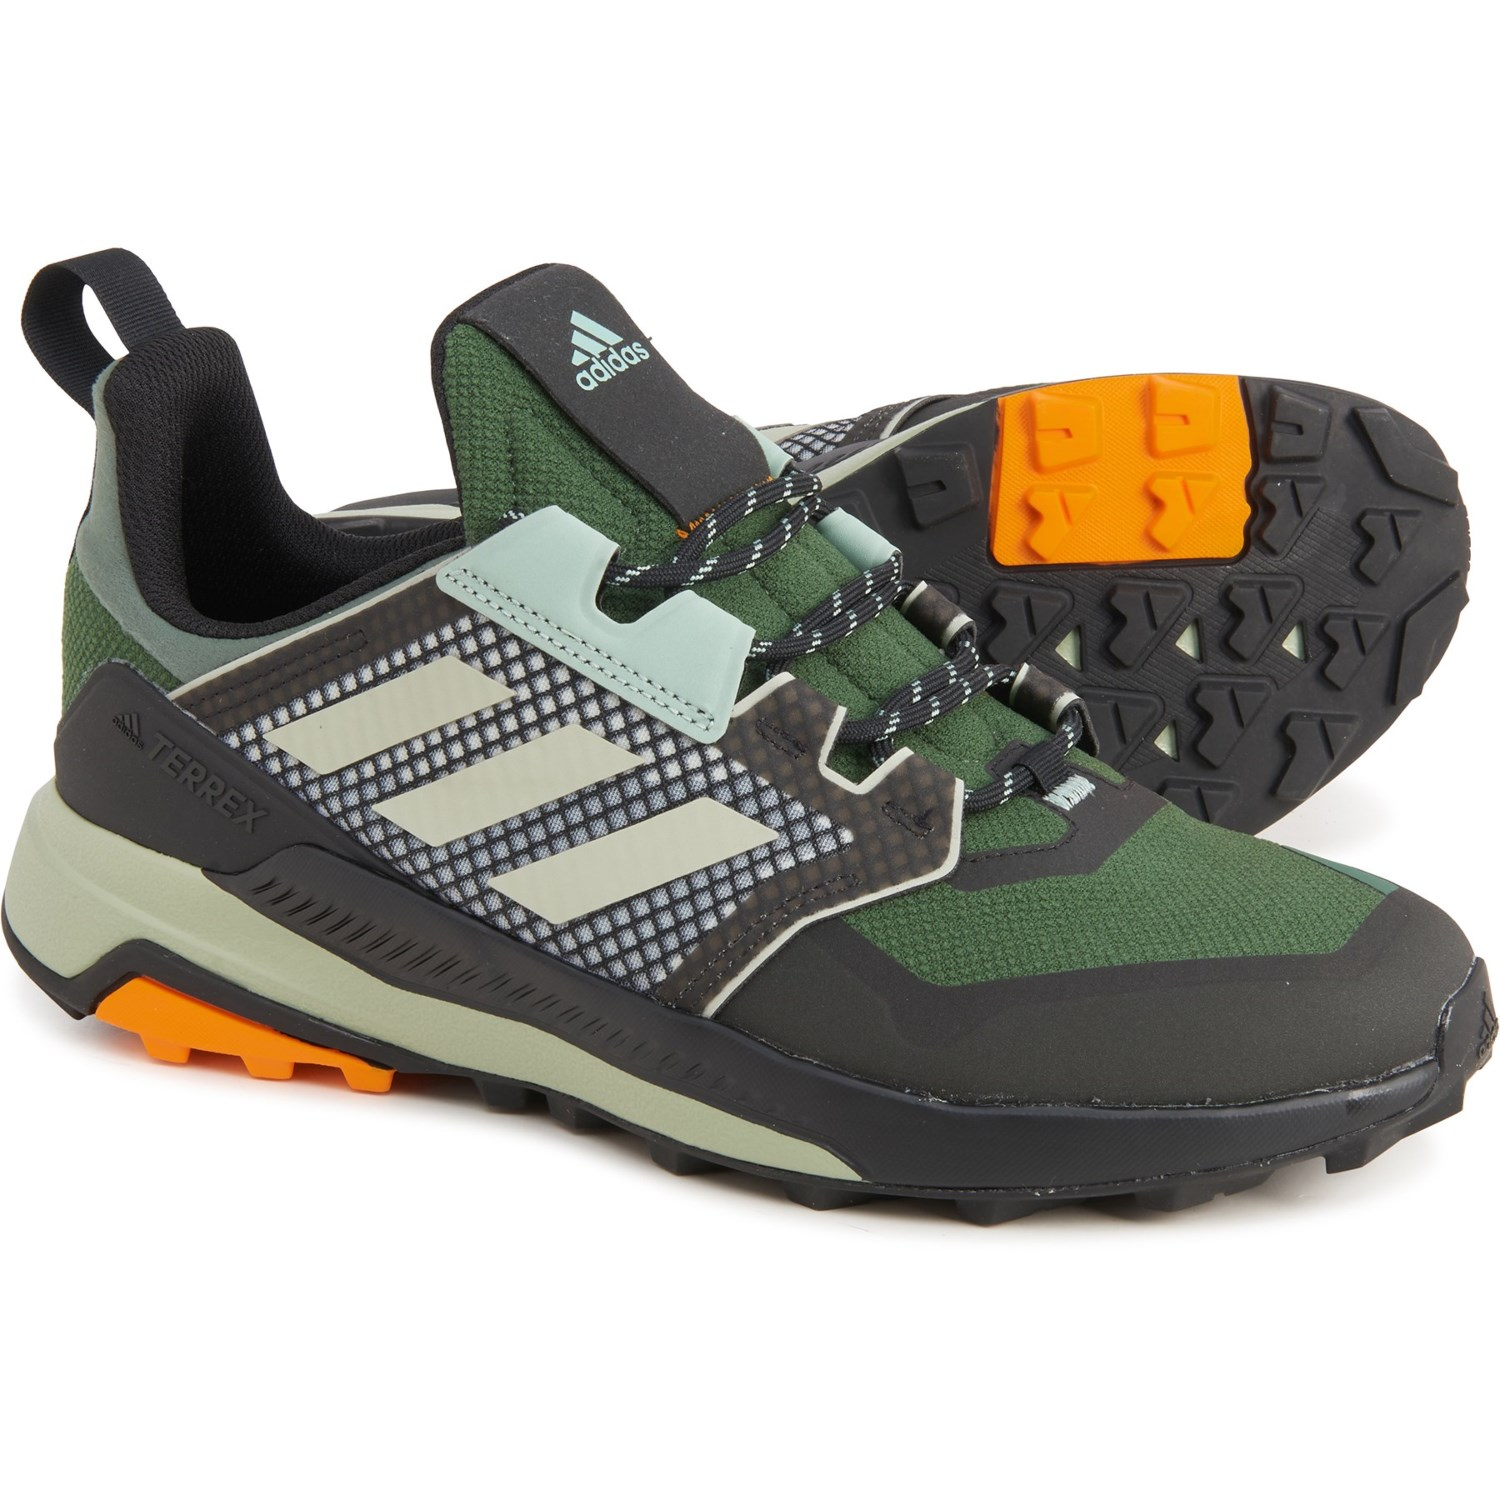 adidas outdoor Terrex Trailmaker Hiking Shoes (For Men) - Save 36%